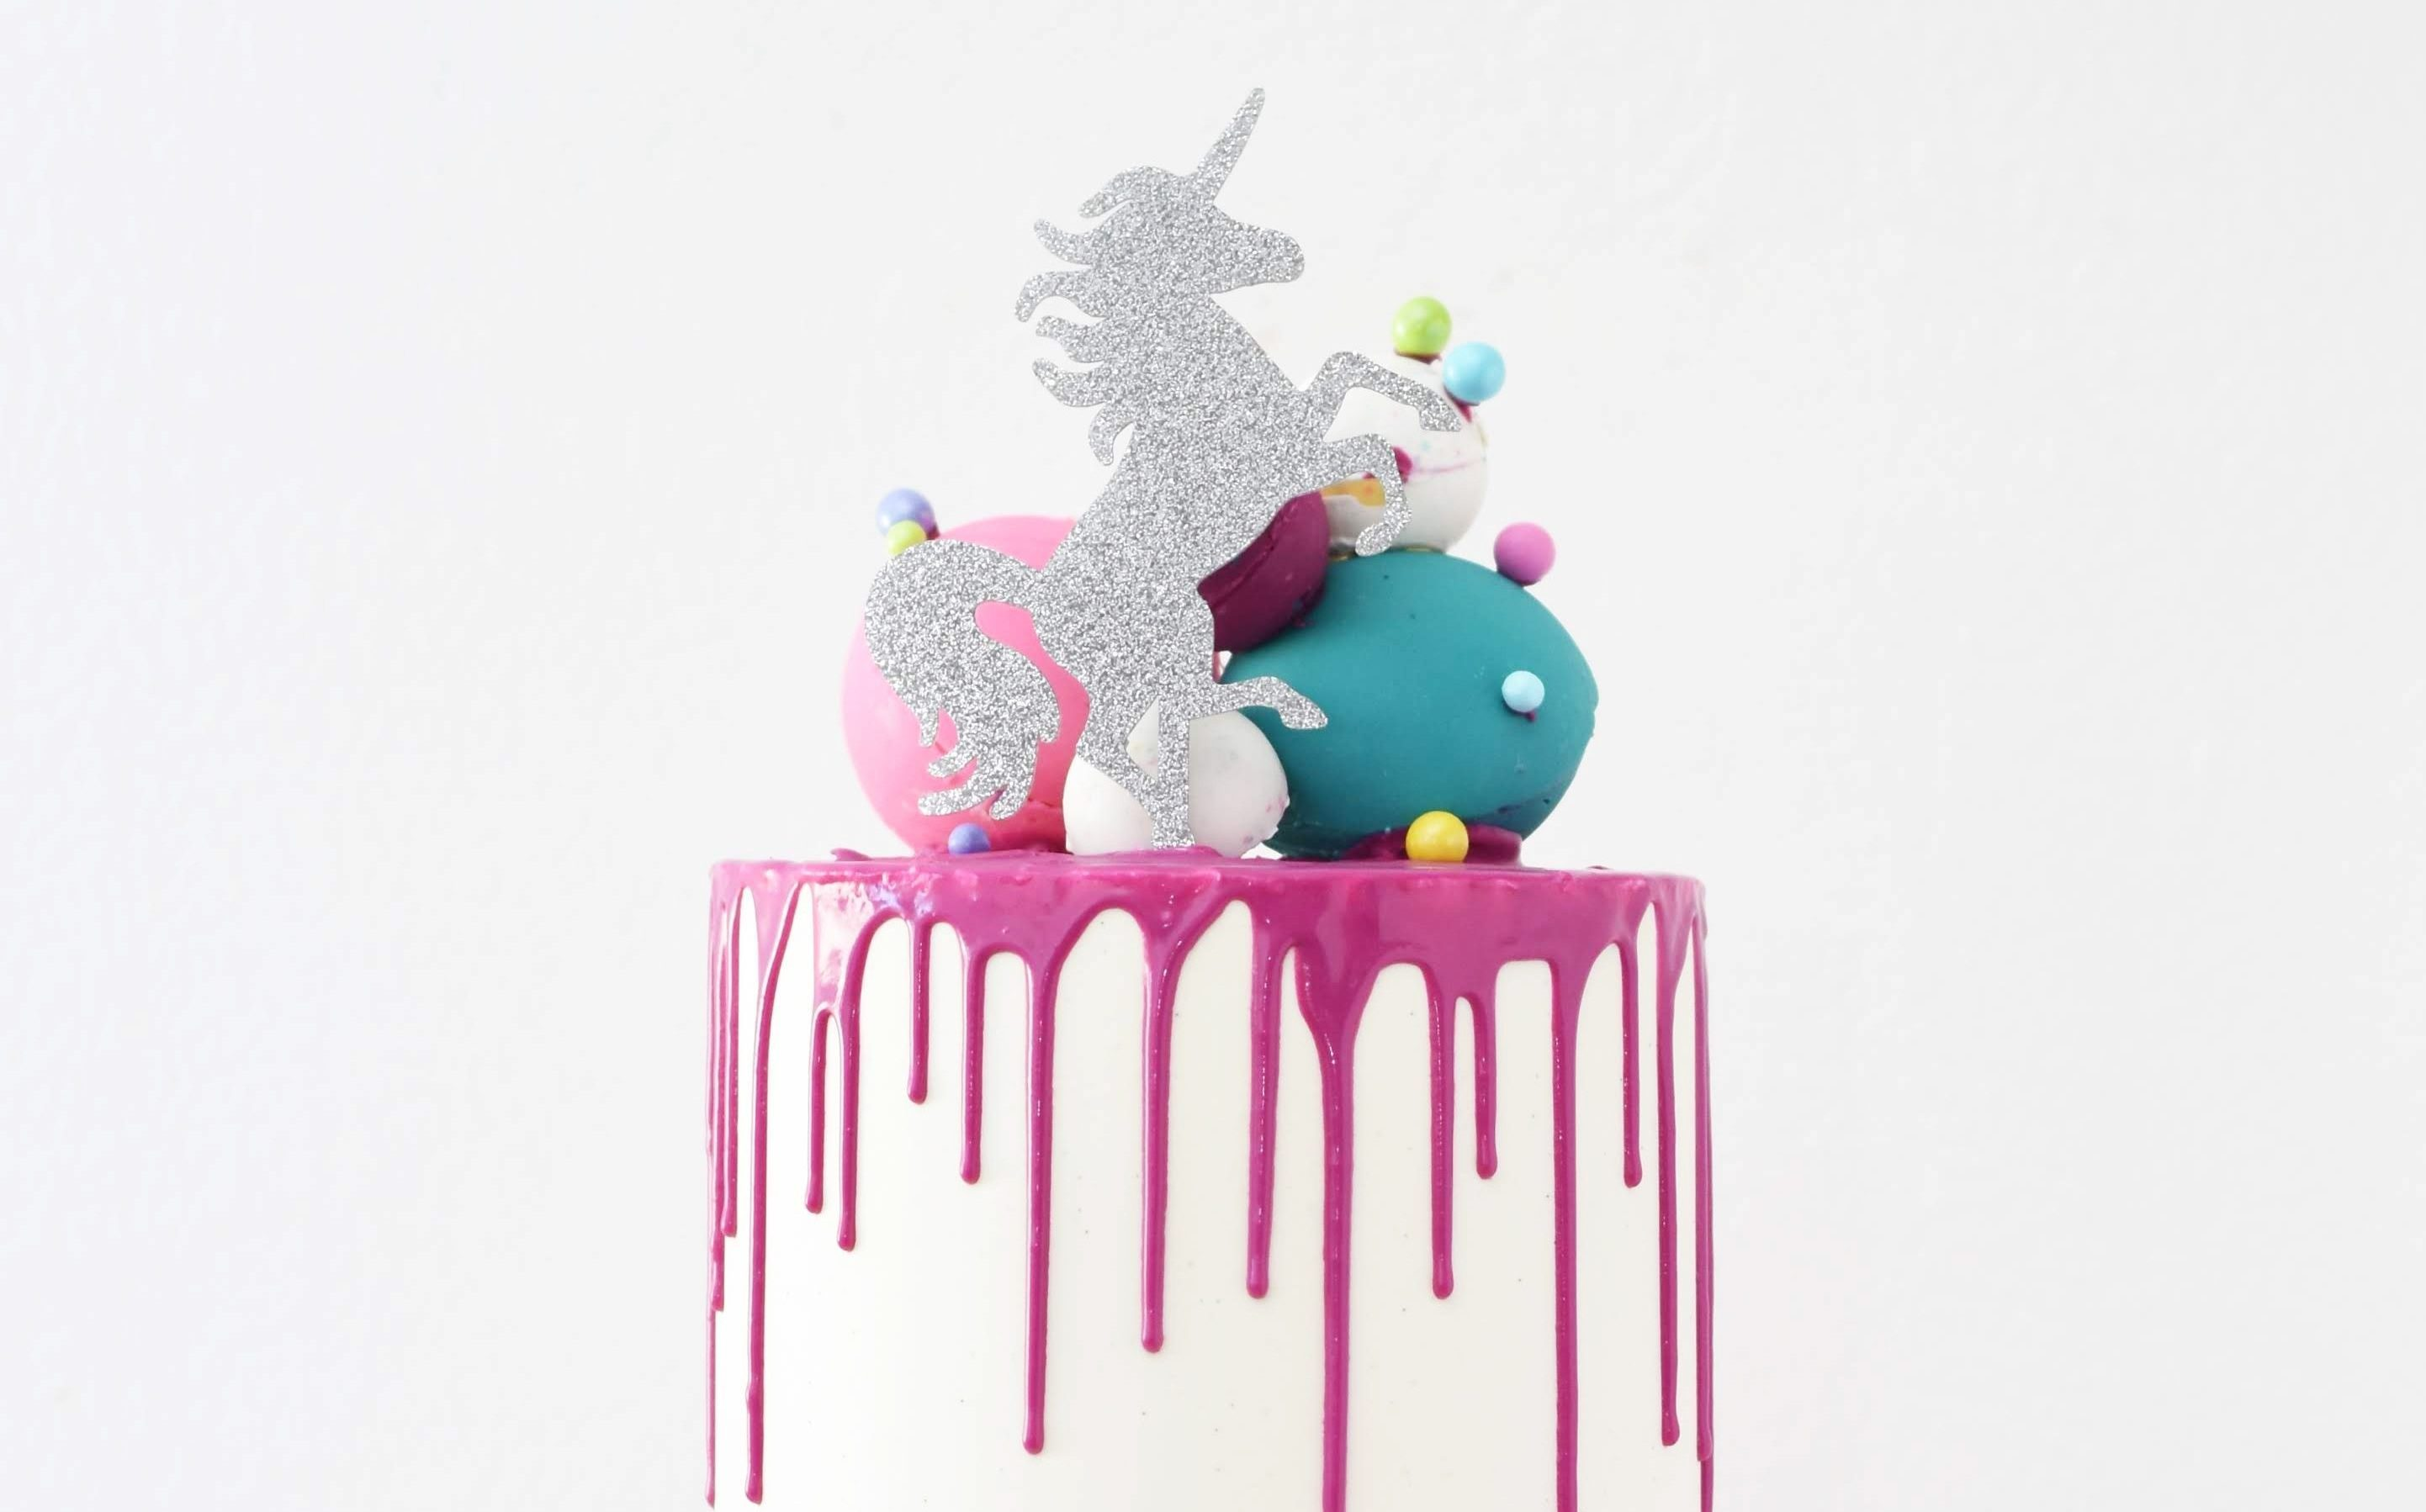 Grand cake with unicorn figure on top. Pink icing drizzle.